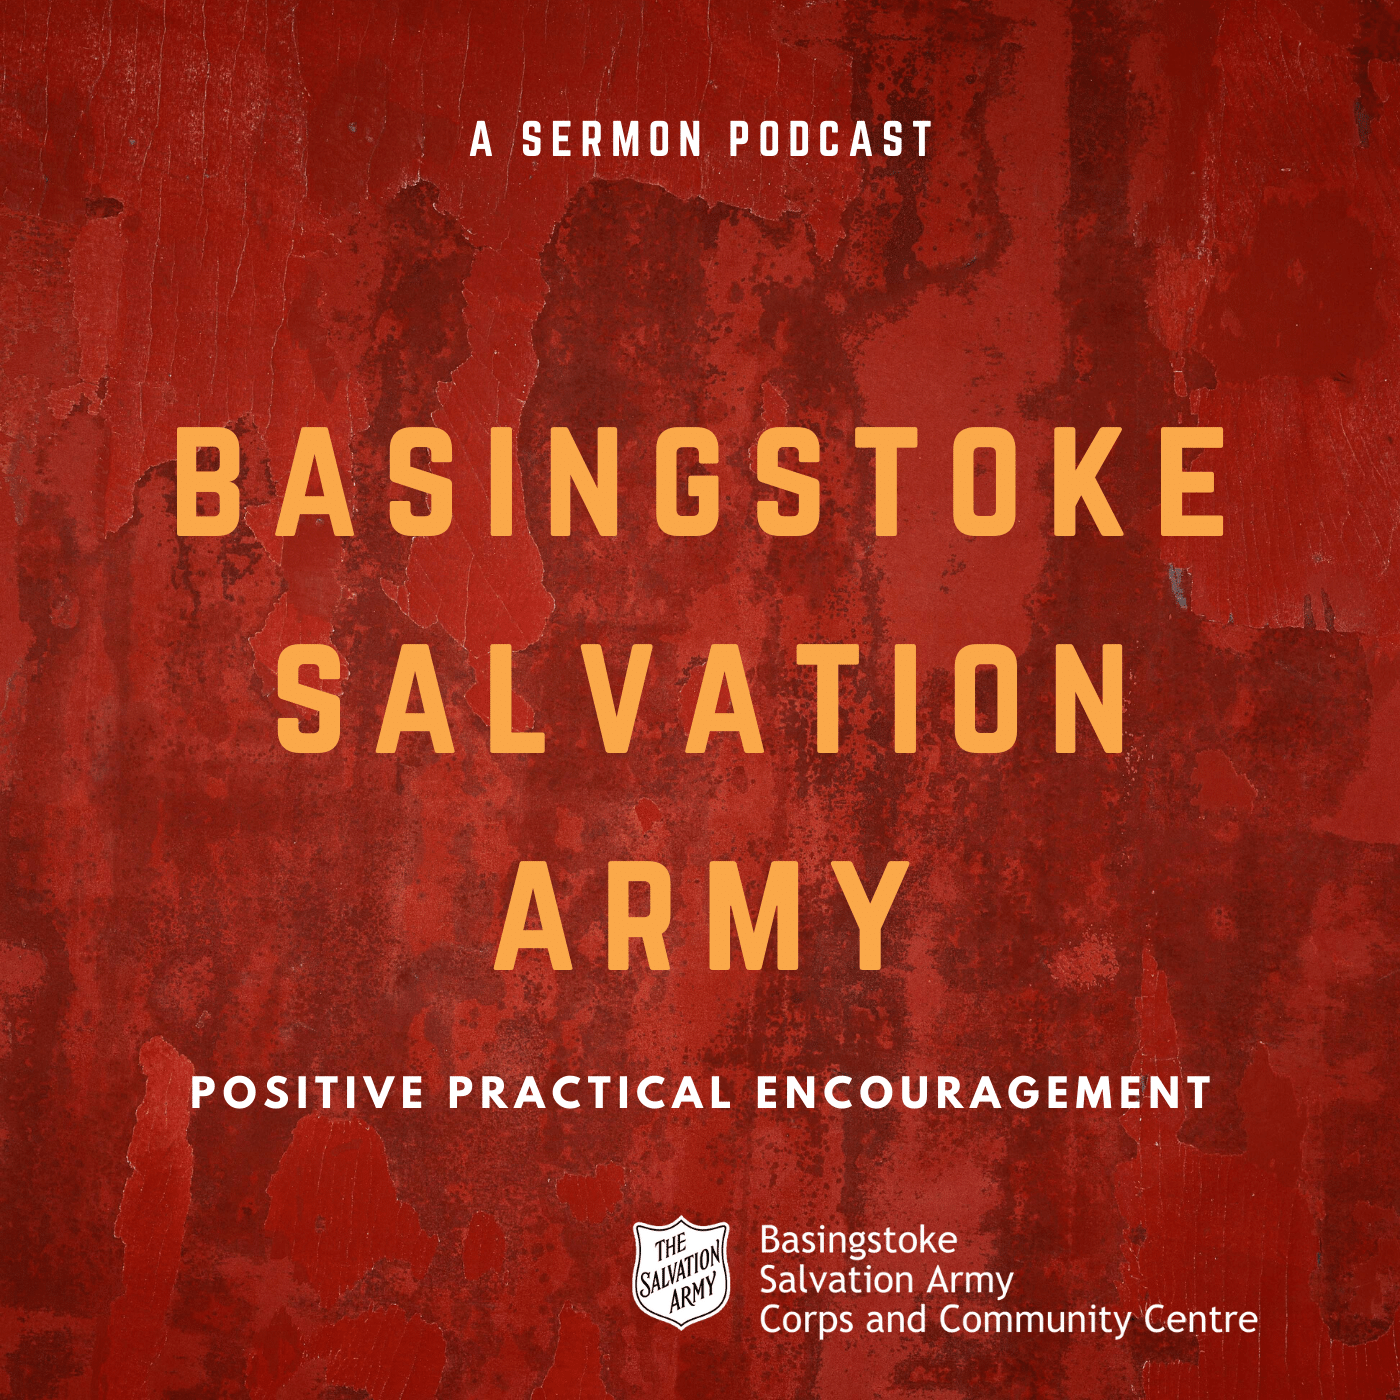 Basingstoke Salvation Army Sermons